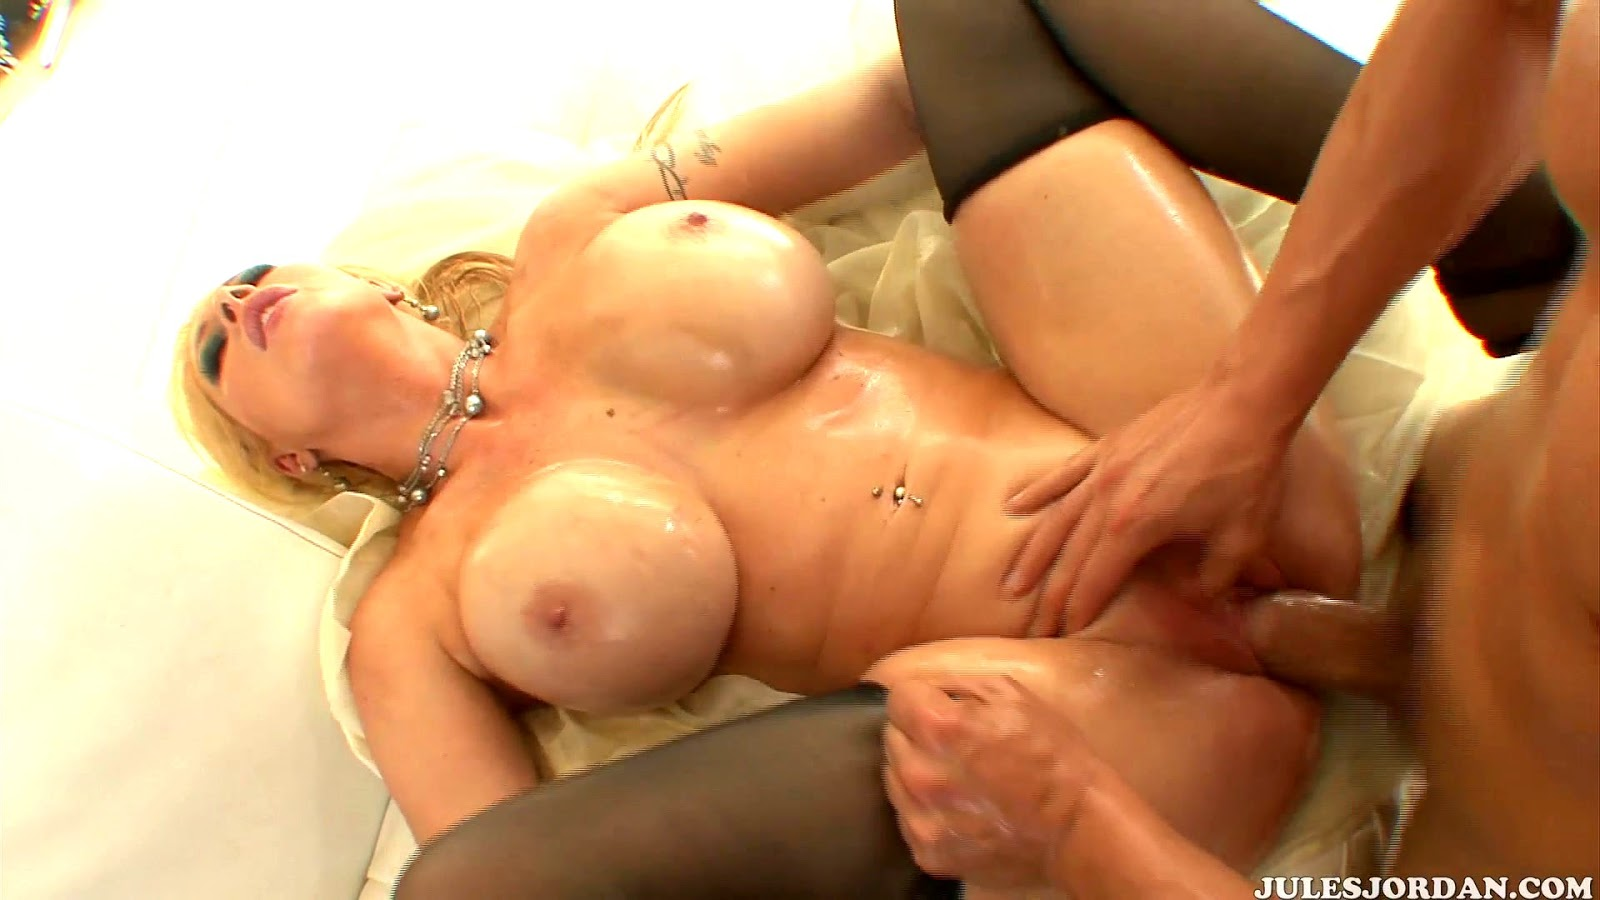 Latina anal porn pictures-3573